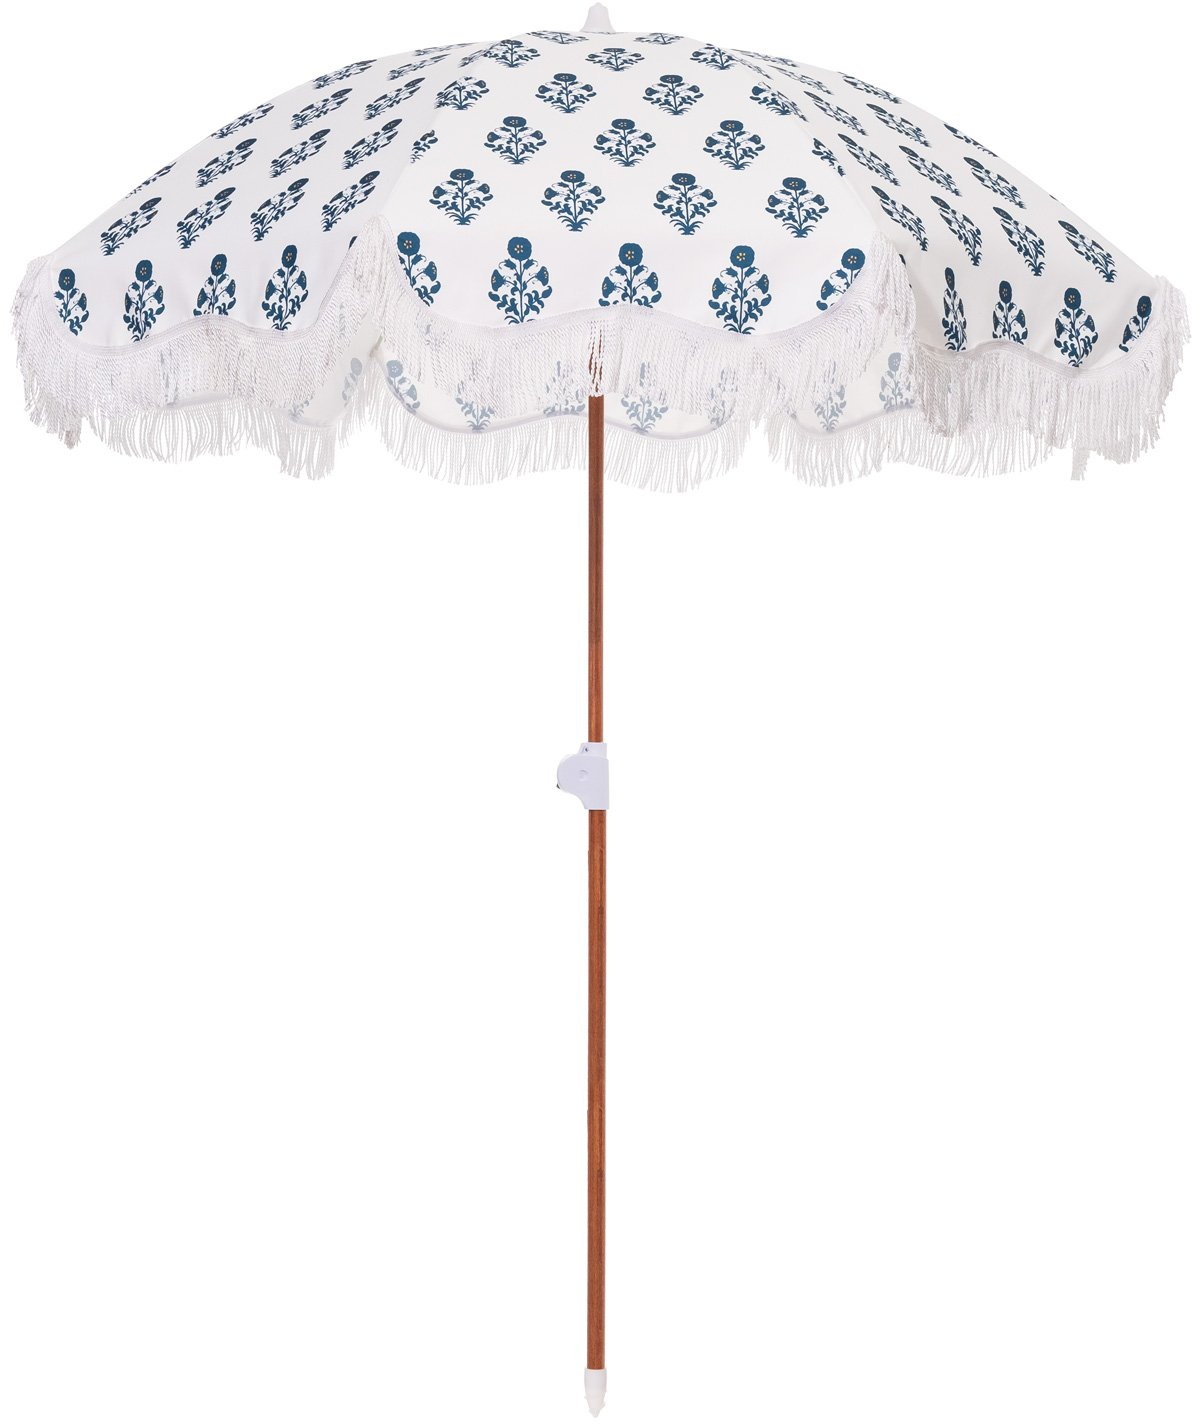 Summer Party Hostess Gifts: Business and Pleasure Co. Beach Umbrella